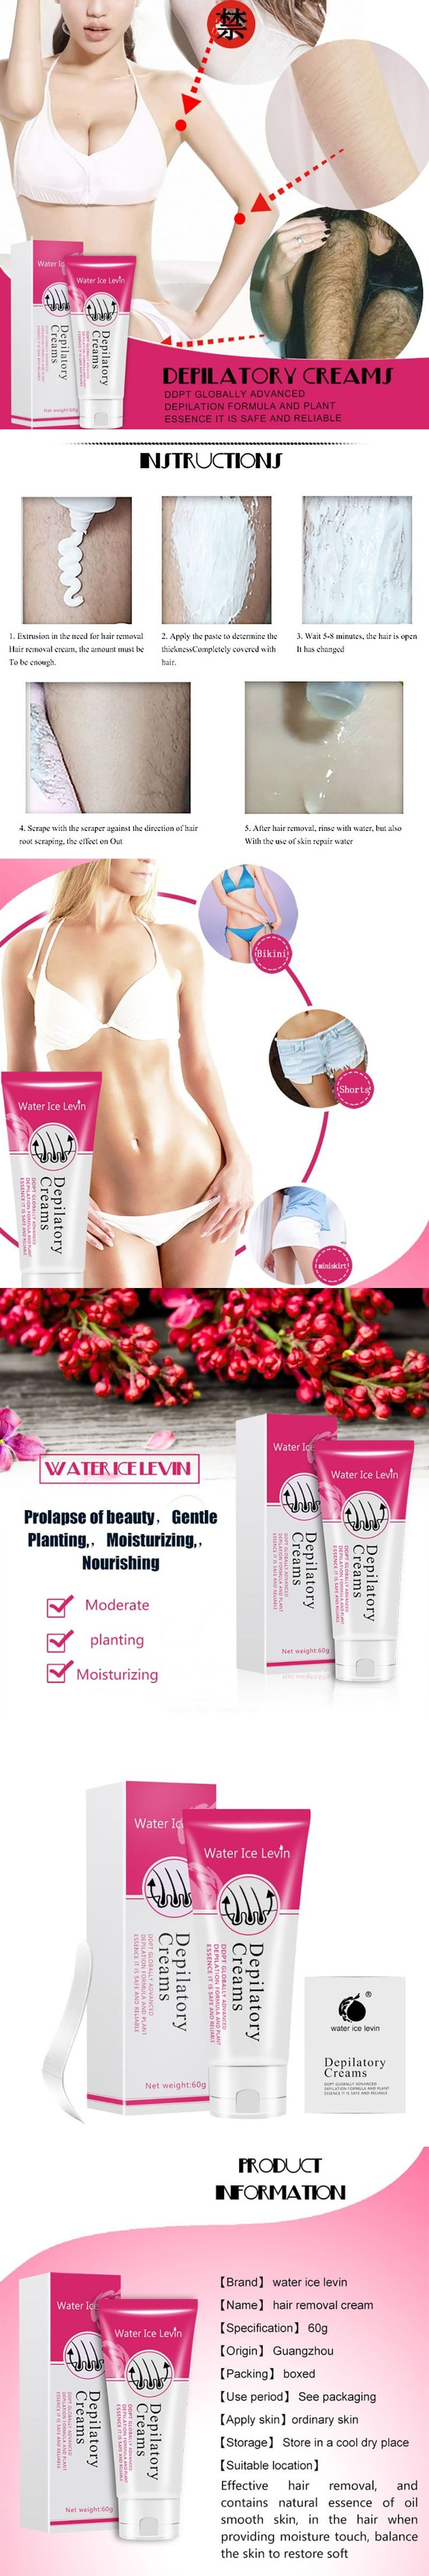 60G Hair Remov Water Ice Levin Painless Depilatory Cream Legs Depilation Cream Hair Removal for Men And Women Armpit Legs